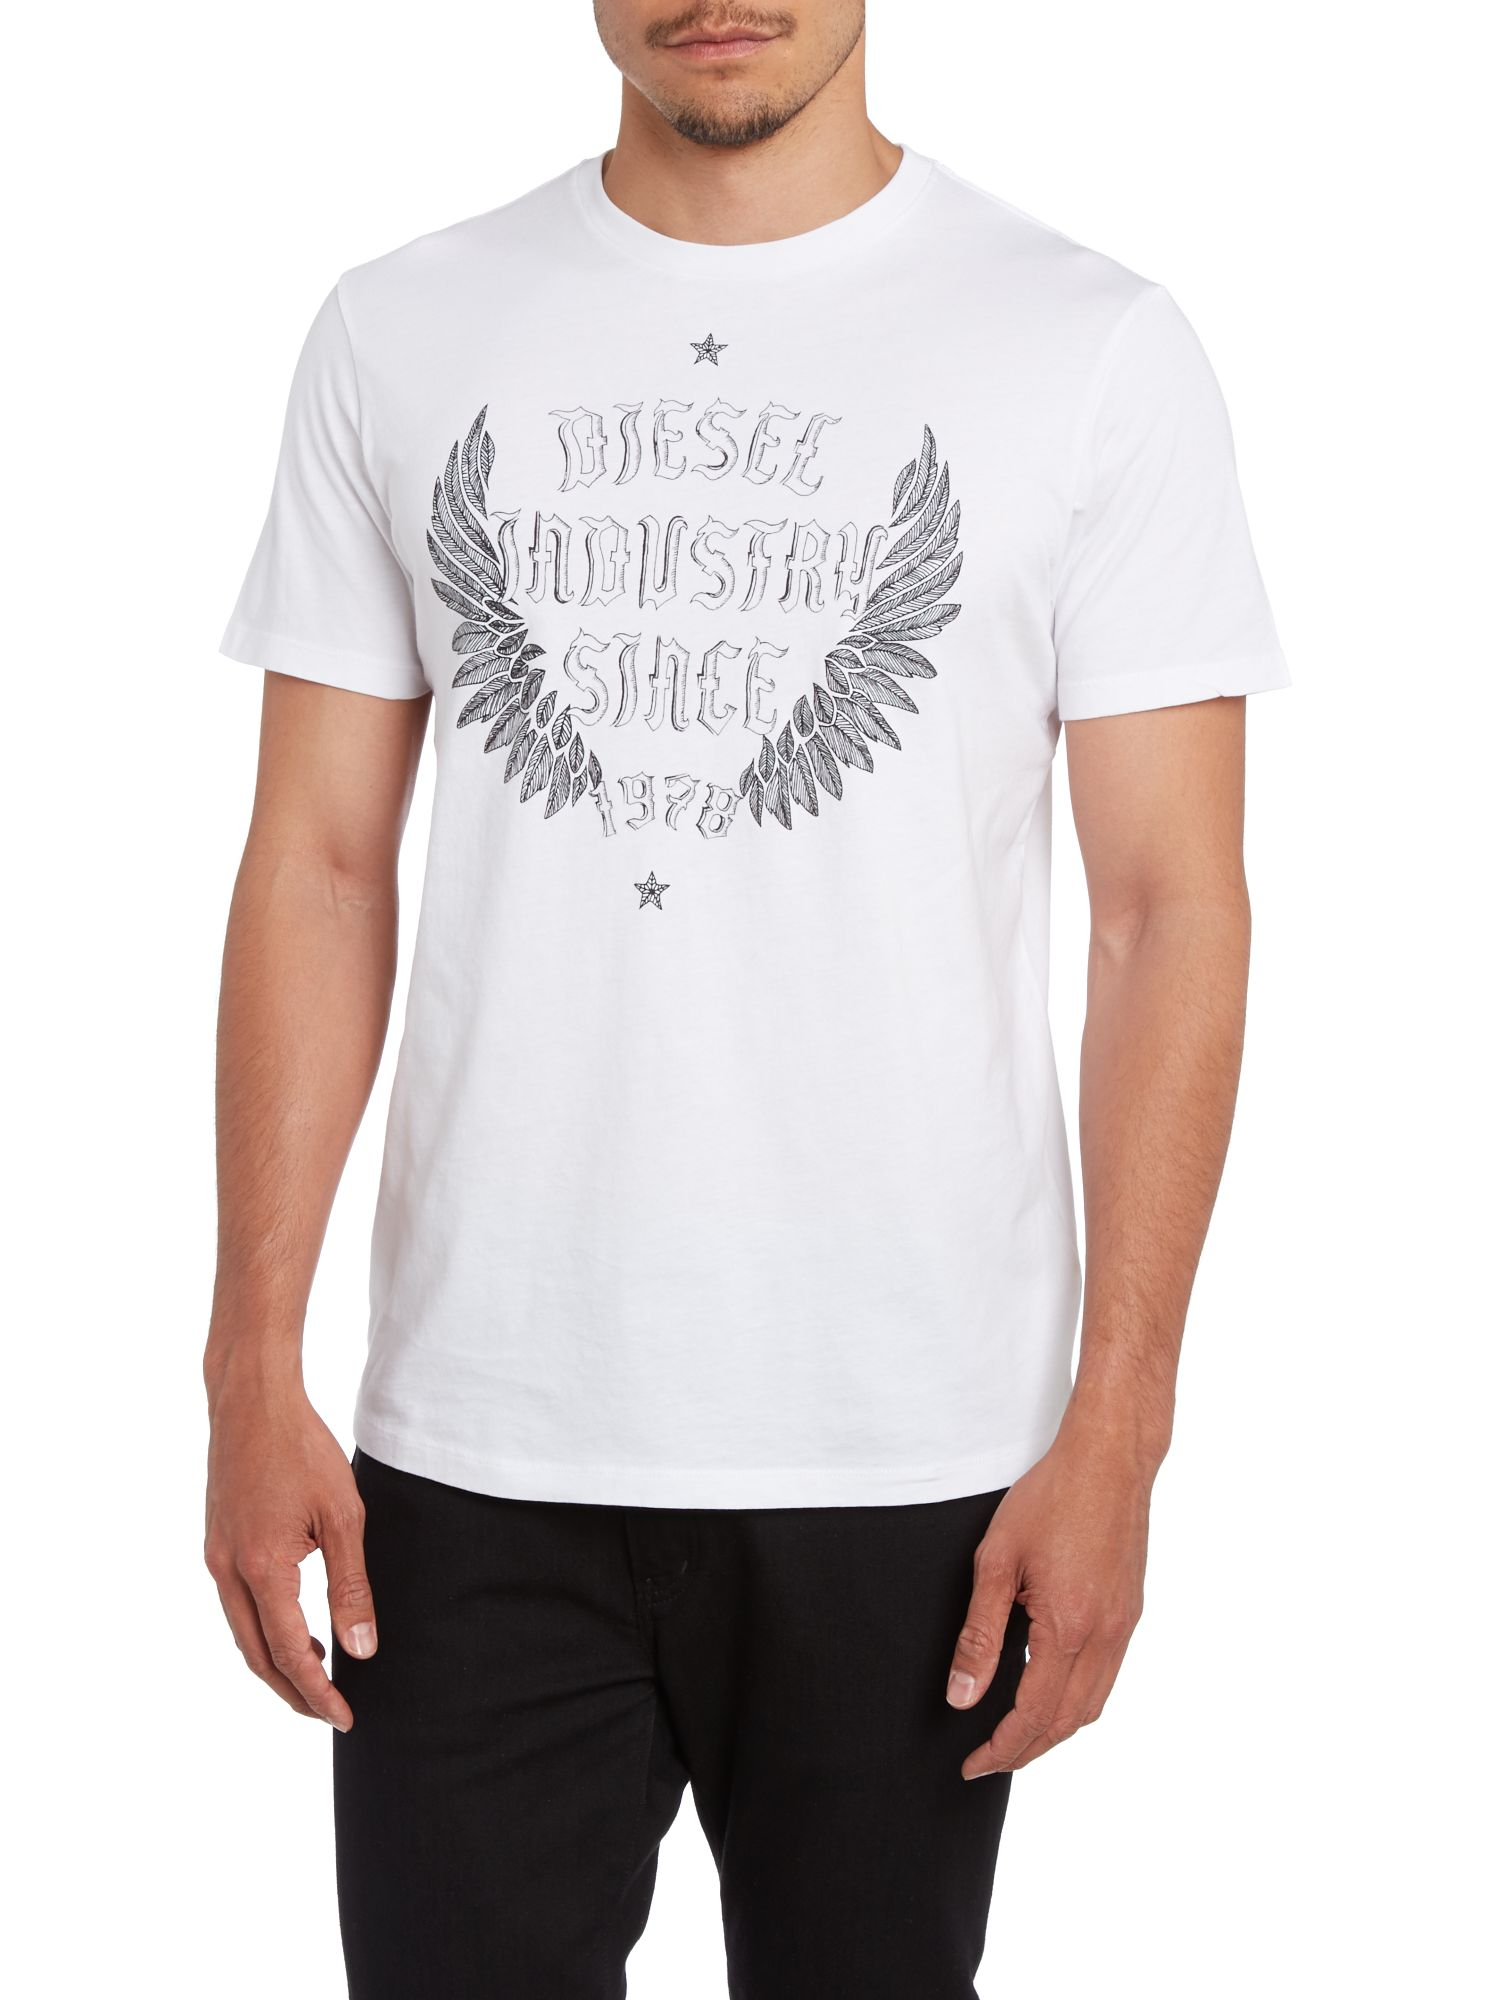 Wings 1978 print crew neck t shirt